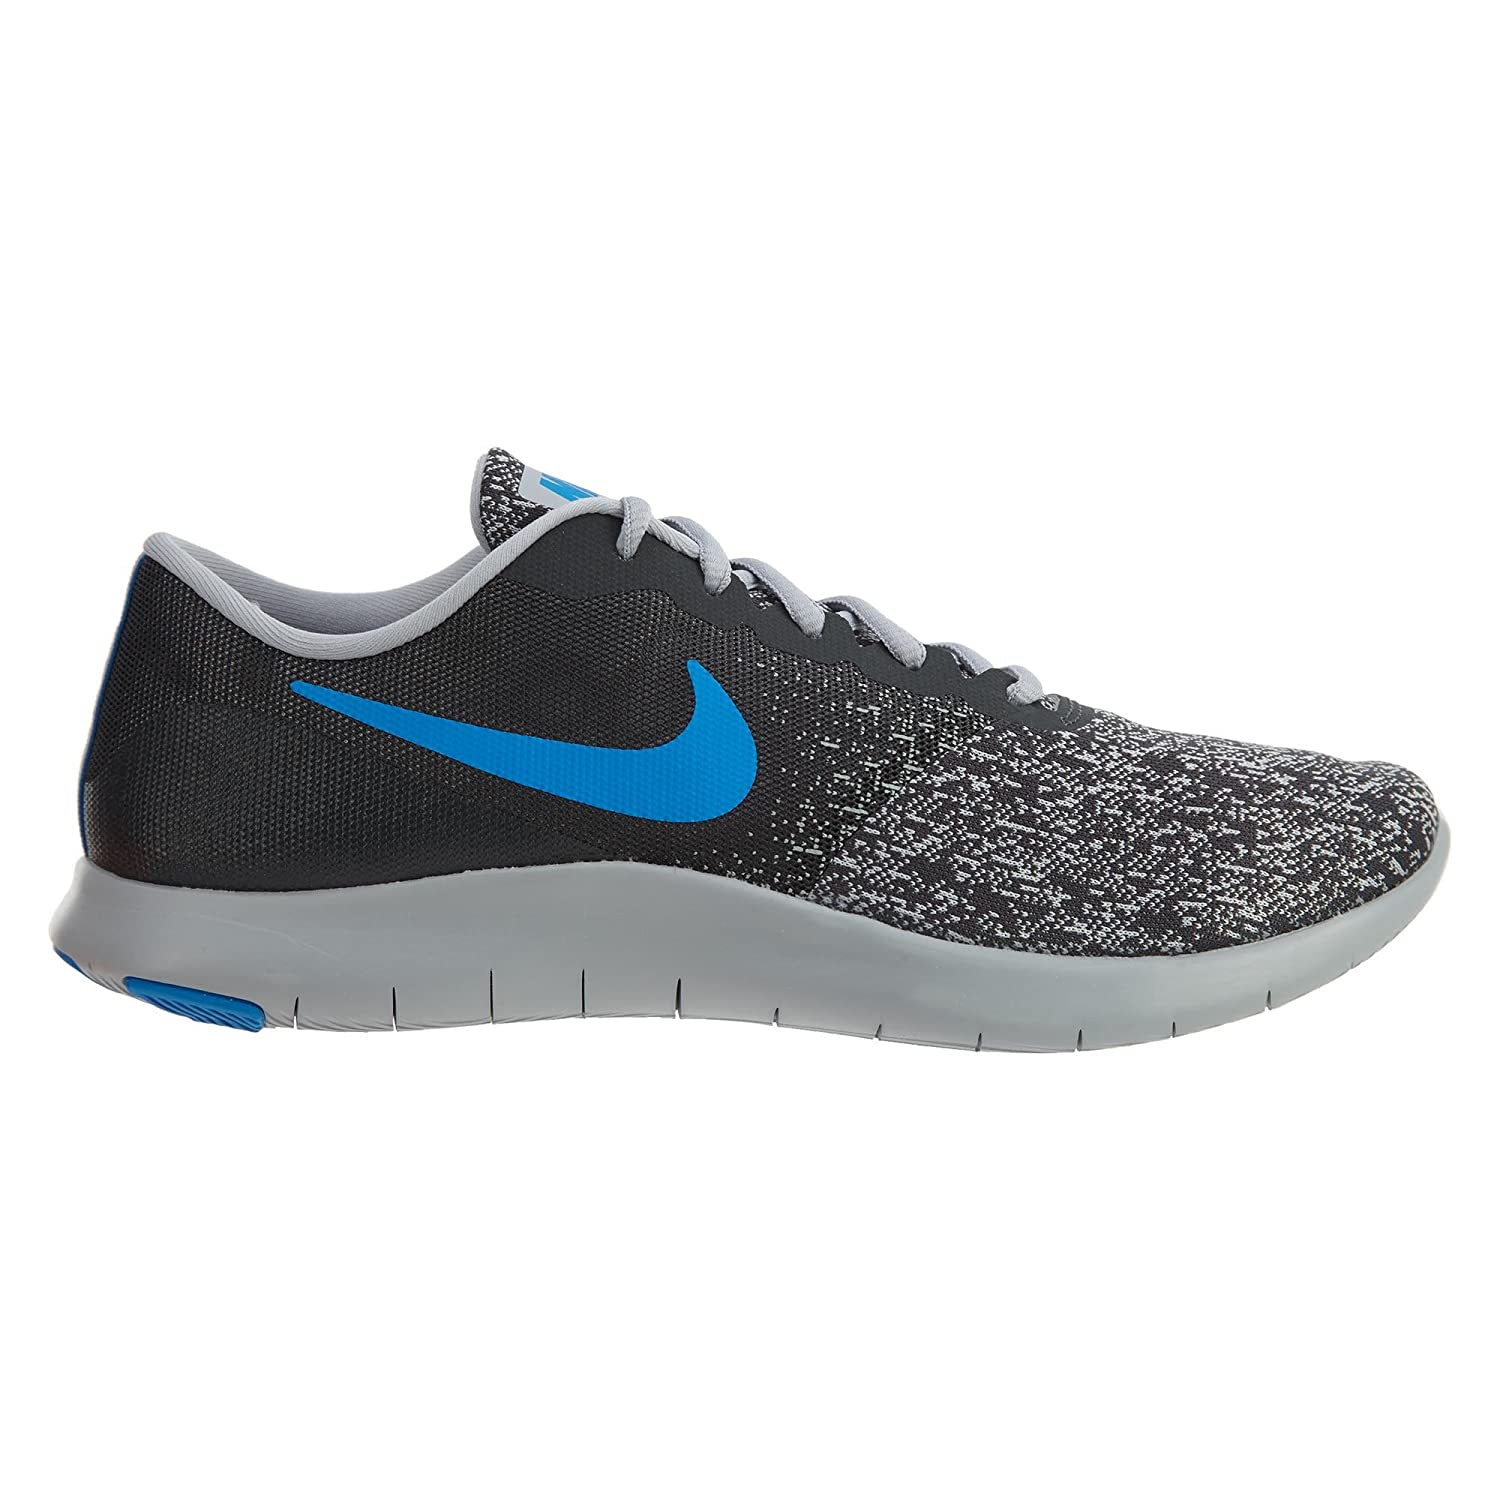 NIKE Mens Flex Contact, Anthracite Photo Blau-Wolf grau, grau, grau, 12 93ccba